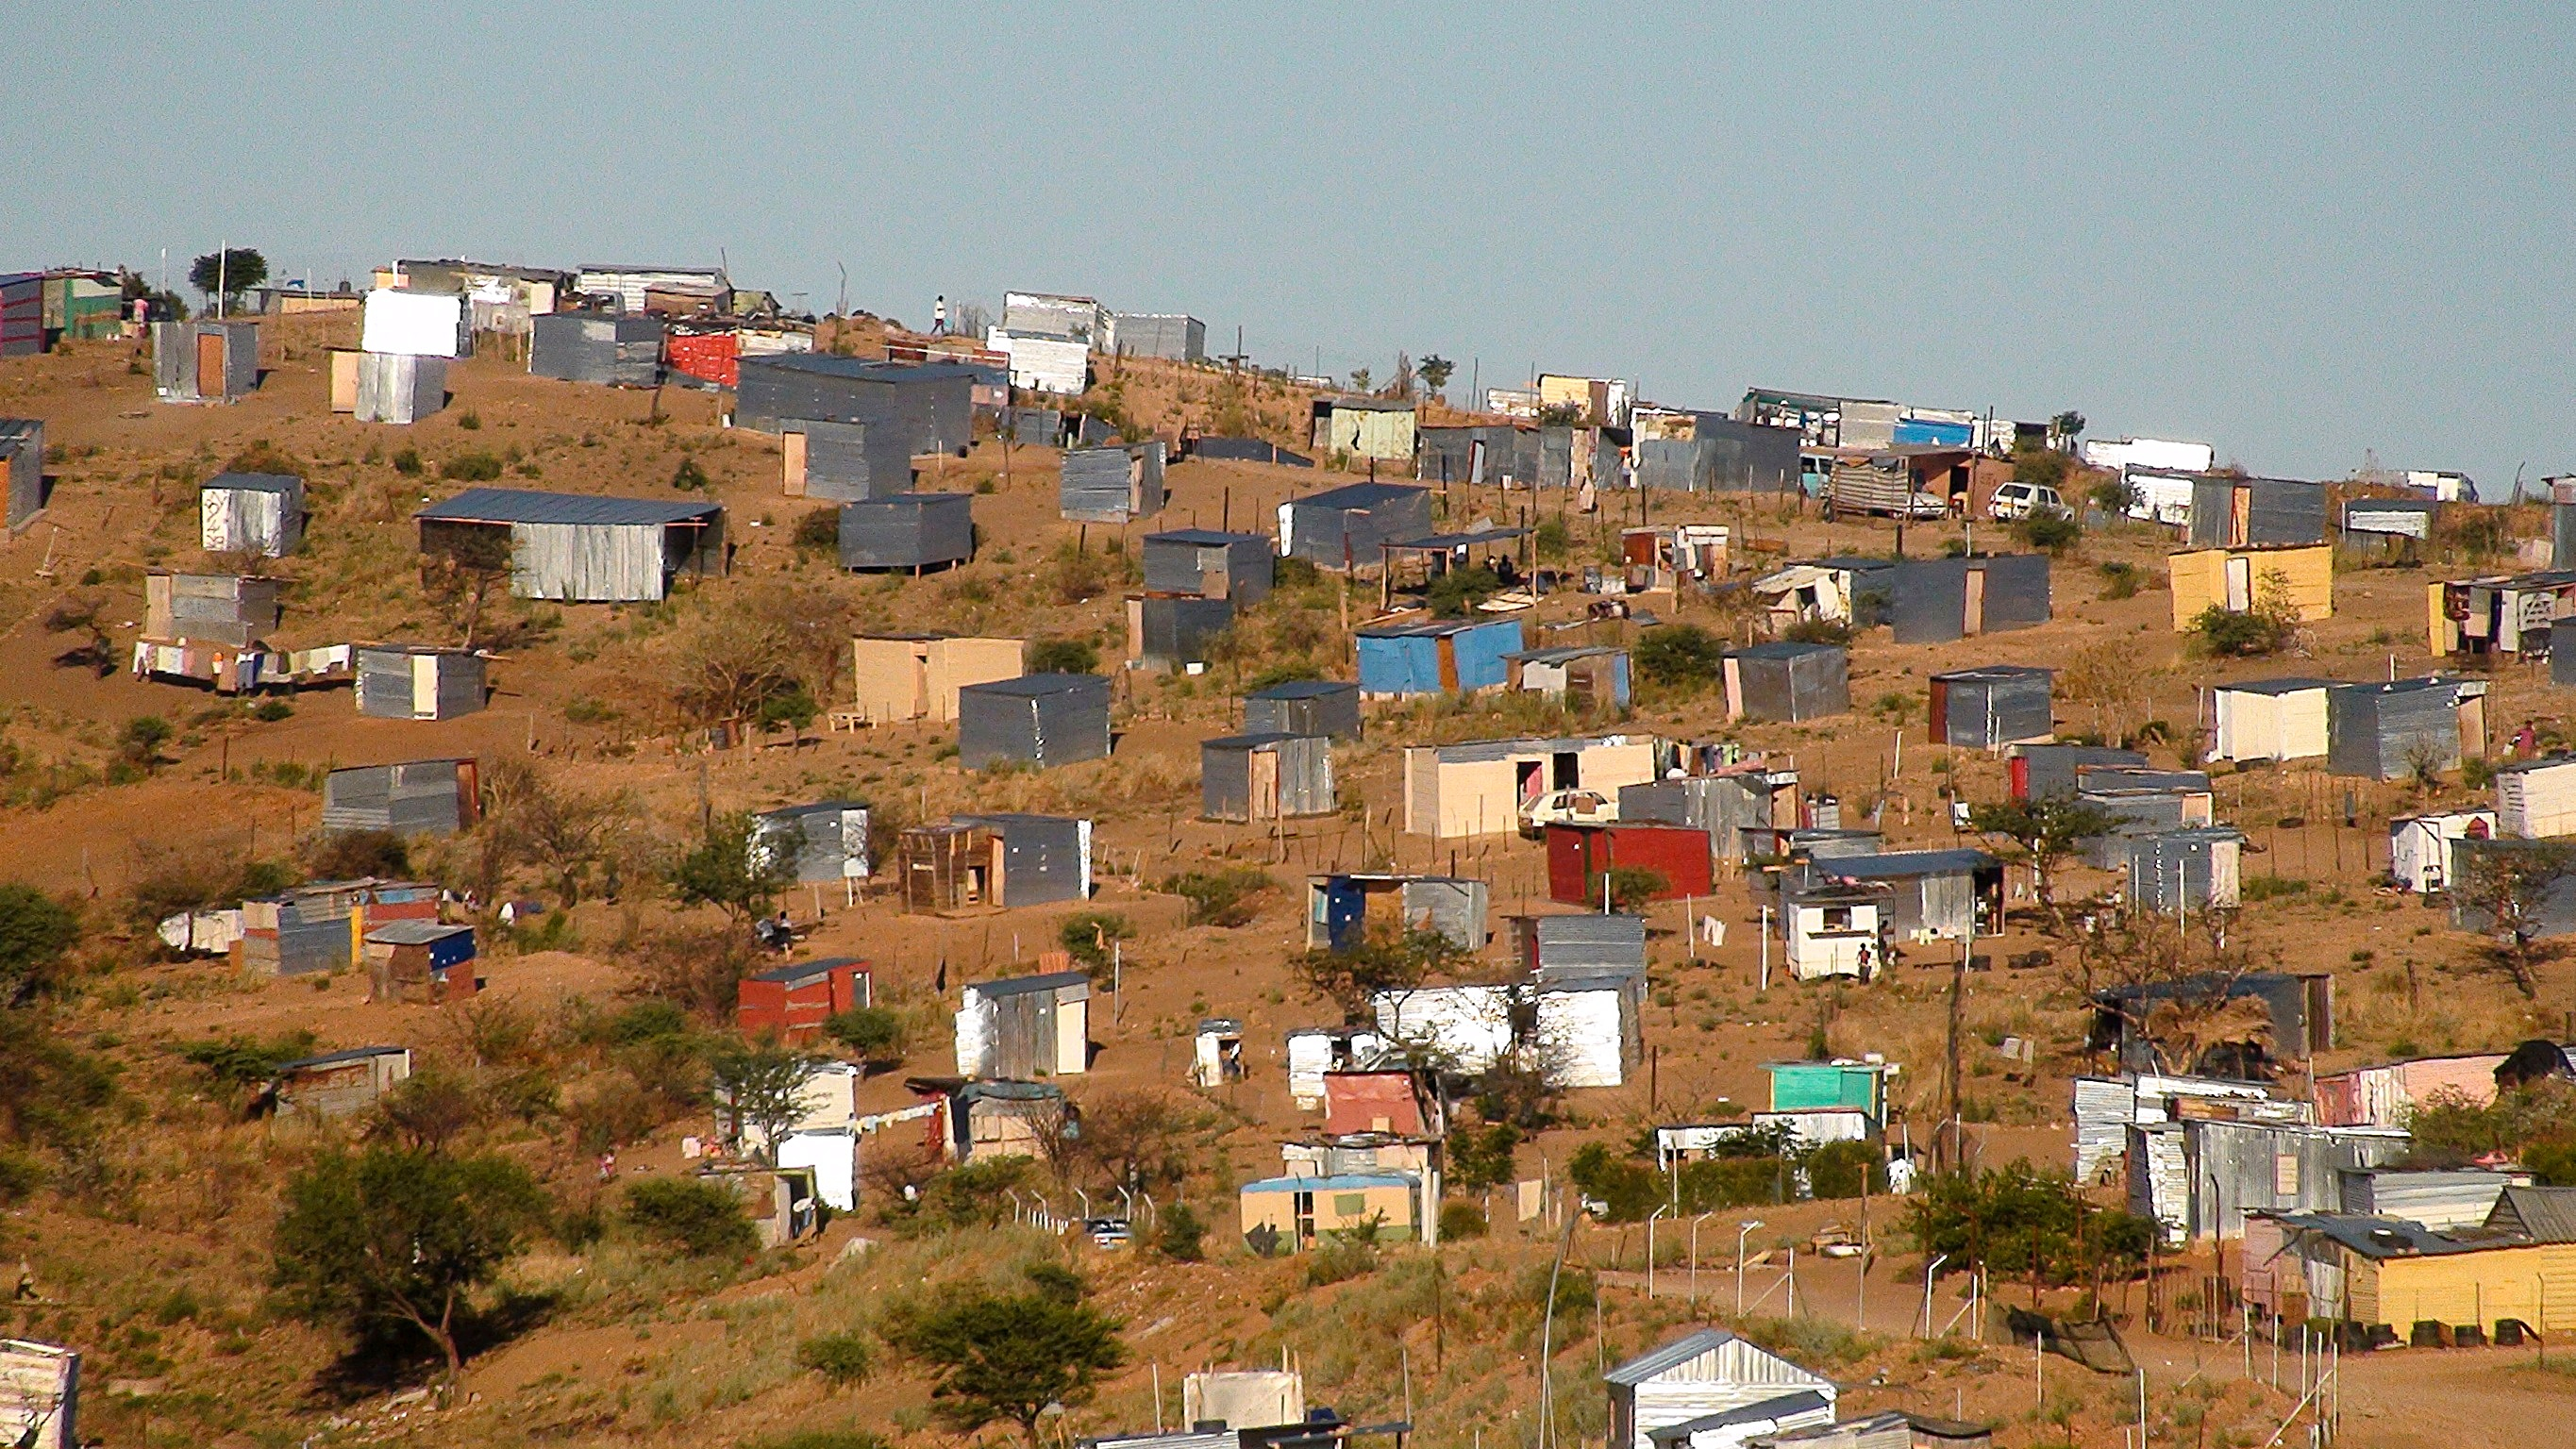 Windhoek's Informal Settlements | TAZM PICTURES